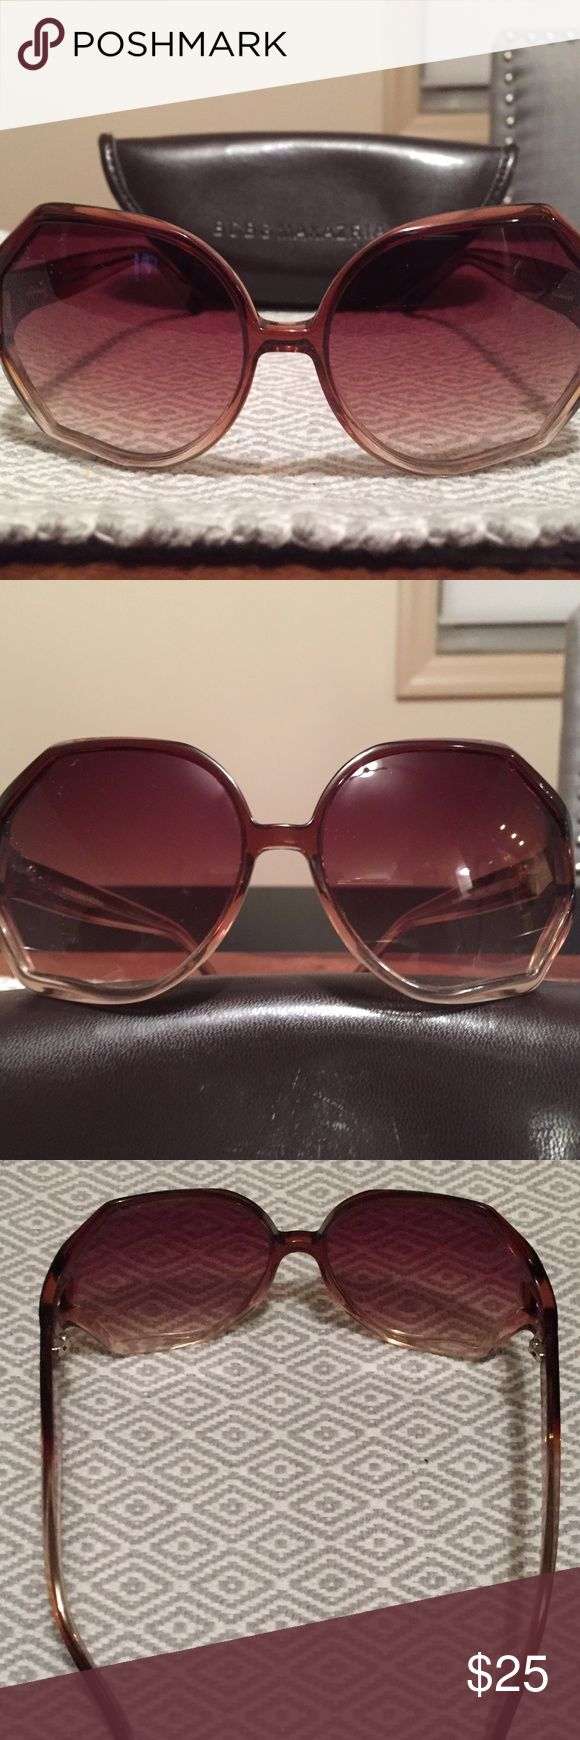 EUC $99 BCBG MAX AZRIA Vintage Style Sunglasses EUC $99 BCBG MAX AZRIA Vintage Style Gradient Sunglasses  Brand: BCBG Max Azria Style #: B340 BRNF Color: Rose/Champaigne Gradient & Gold hardware MSRP: $99 *Original case included  These Handmade plastic frames have a unique geometric angled edge that gives them that extra vintage flare! The subtle gradient transitions from a dusty rose color at the top of the frames to an almost clear champagne color at the bottom of the frames.   *NO…